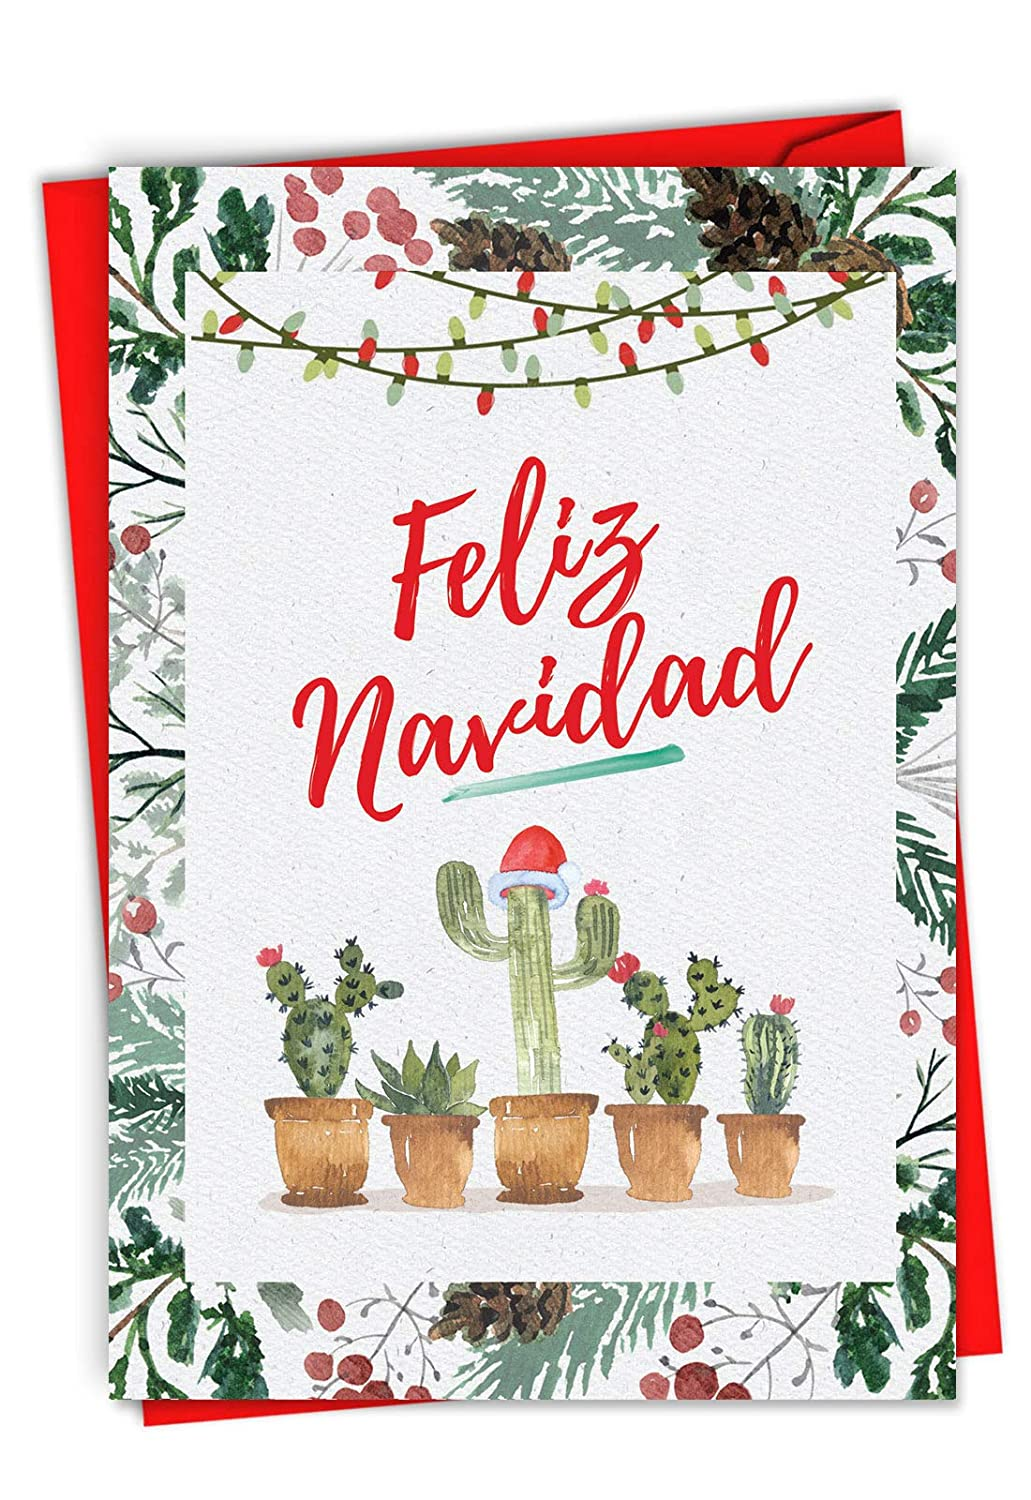 Funny Cactus Feliz Navidad Merry Christmas Card 4.63 x 6.75 inch - Spanish Holiday, Happy New Year, Xmas Note - Feliz Año Nuevo y Felices Fiestas - ...